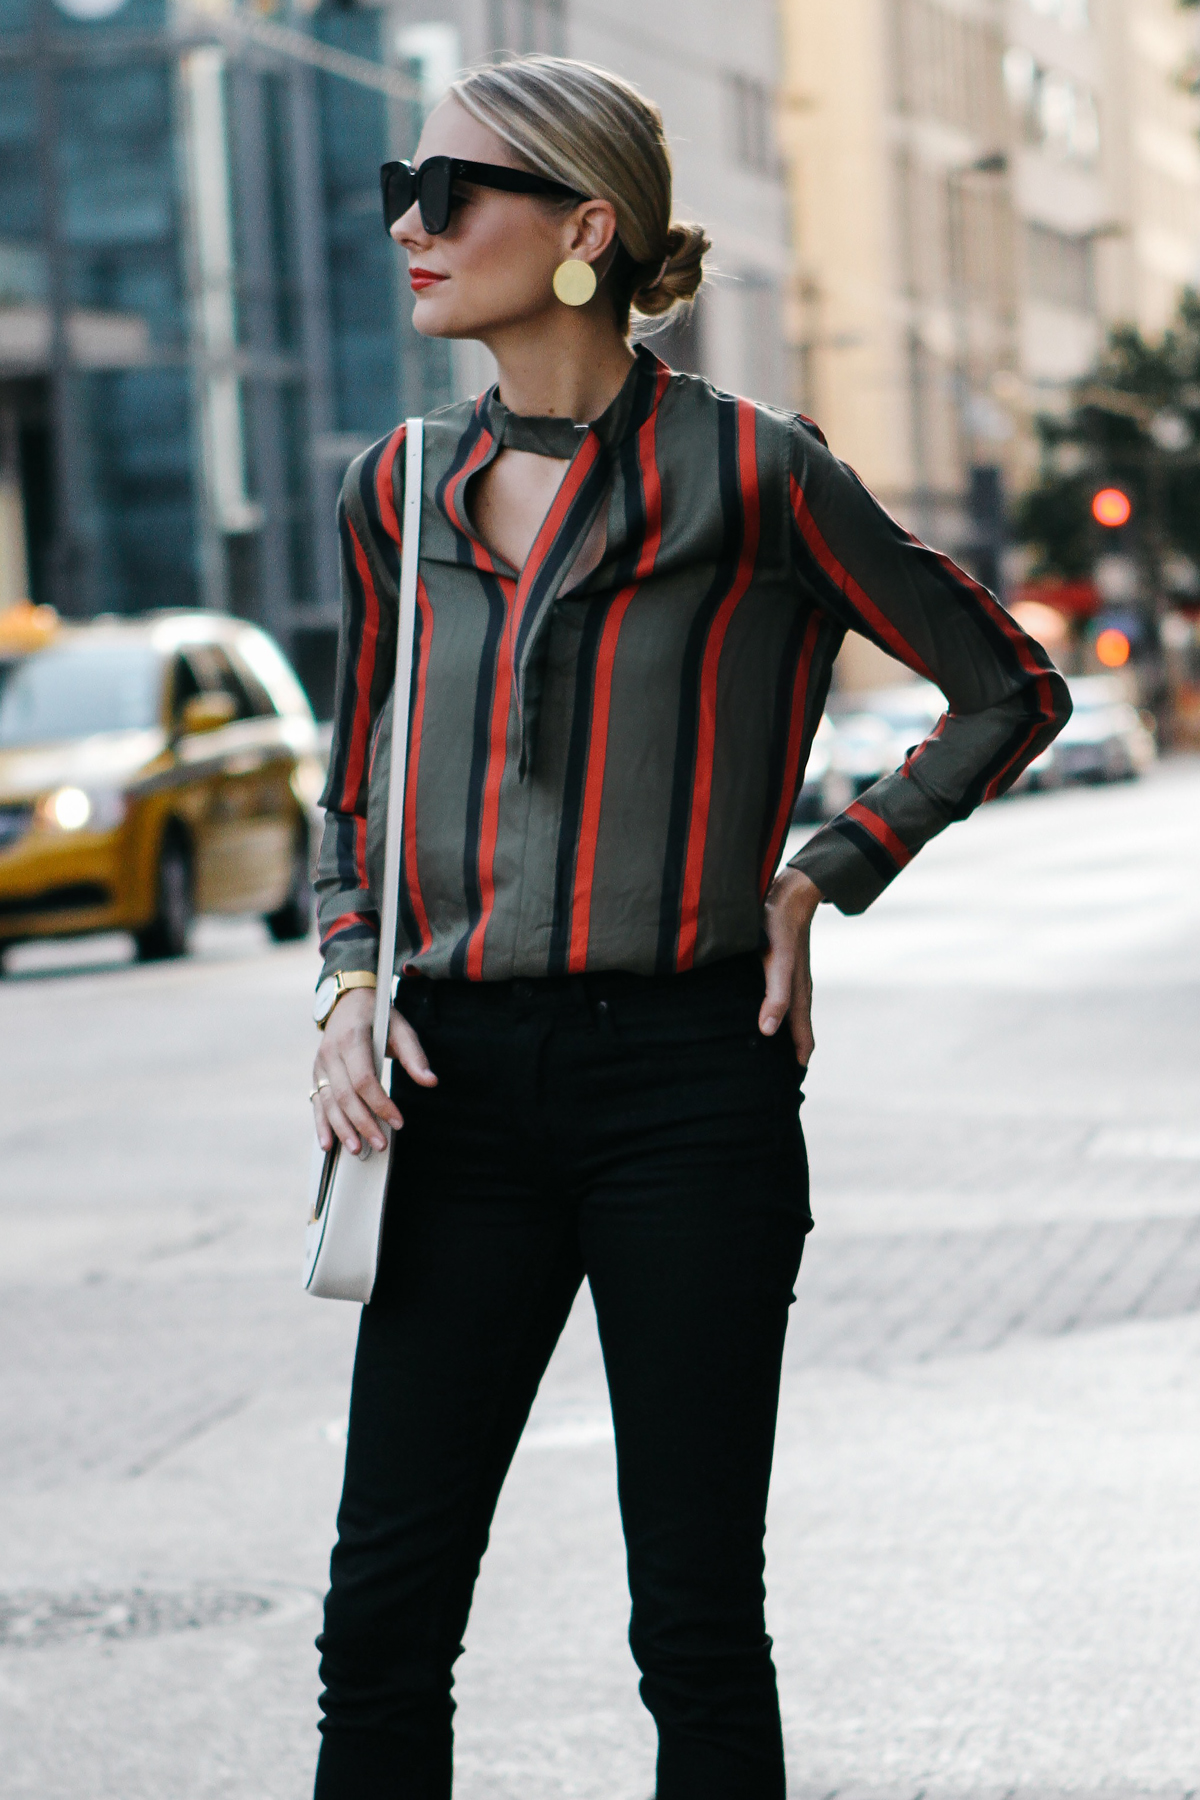 Blonde Woman Wearing Equipment Janelle Striped Blouse Everlane Black Skinny Jeans Fashion Jackson Dallas Blogger Fashion Blogger Street Style